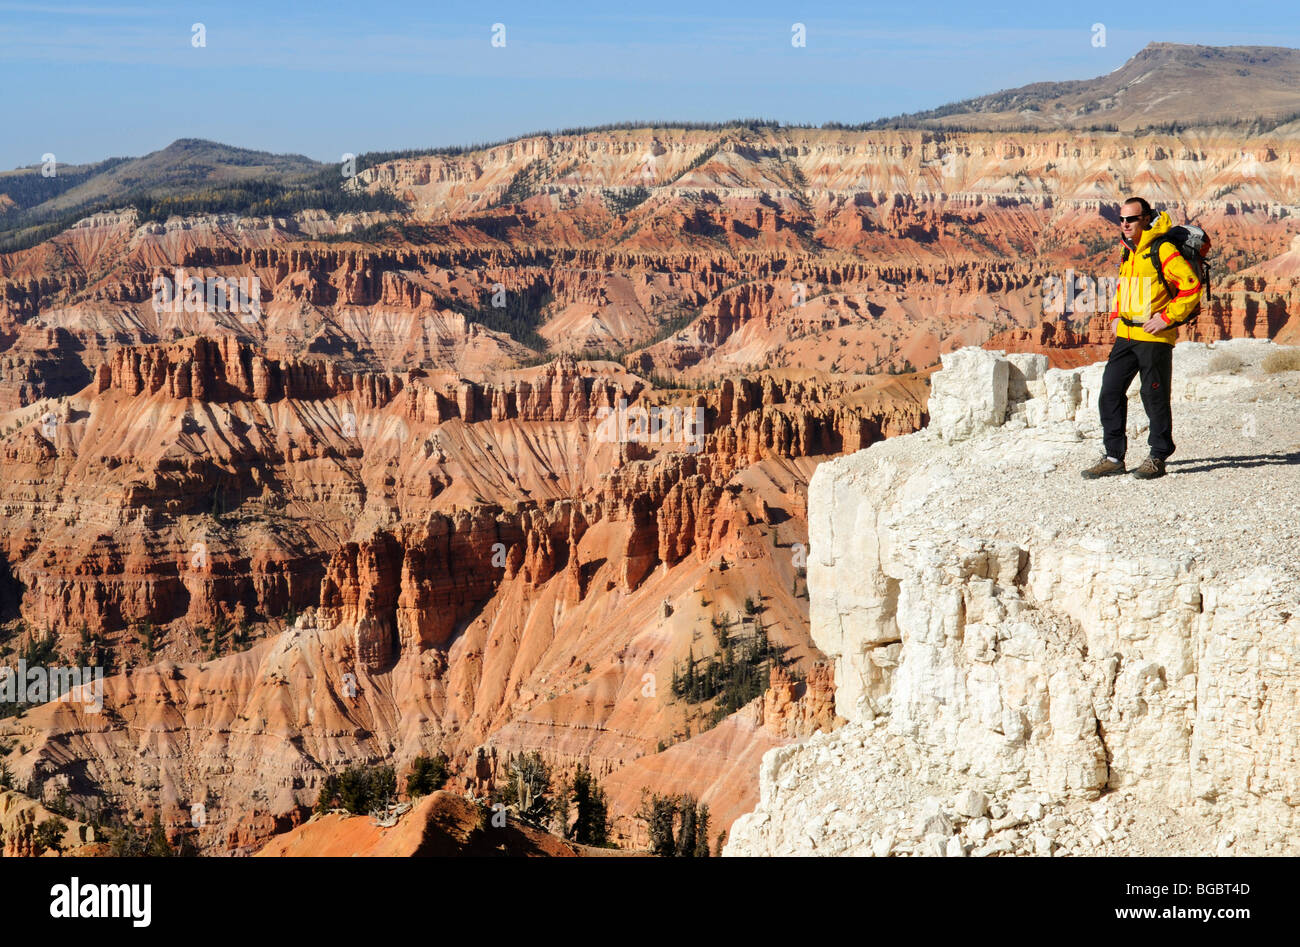 Hiker, Spectra Point, Cedar Breaks National Monument, Dixie National Forest, Brian Head, Utah, USA - Stock Image